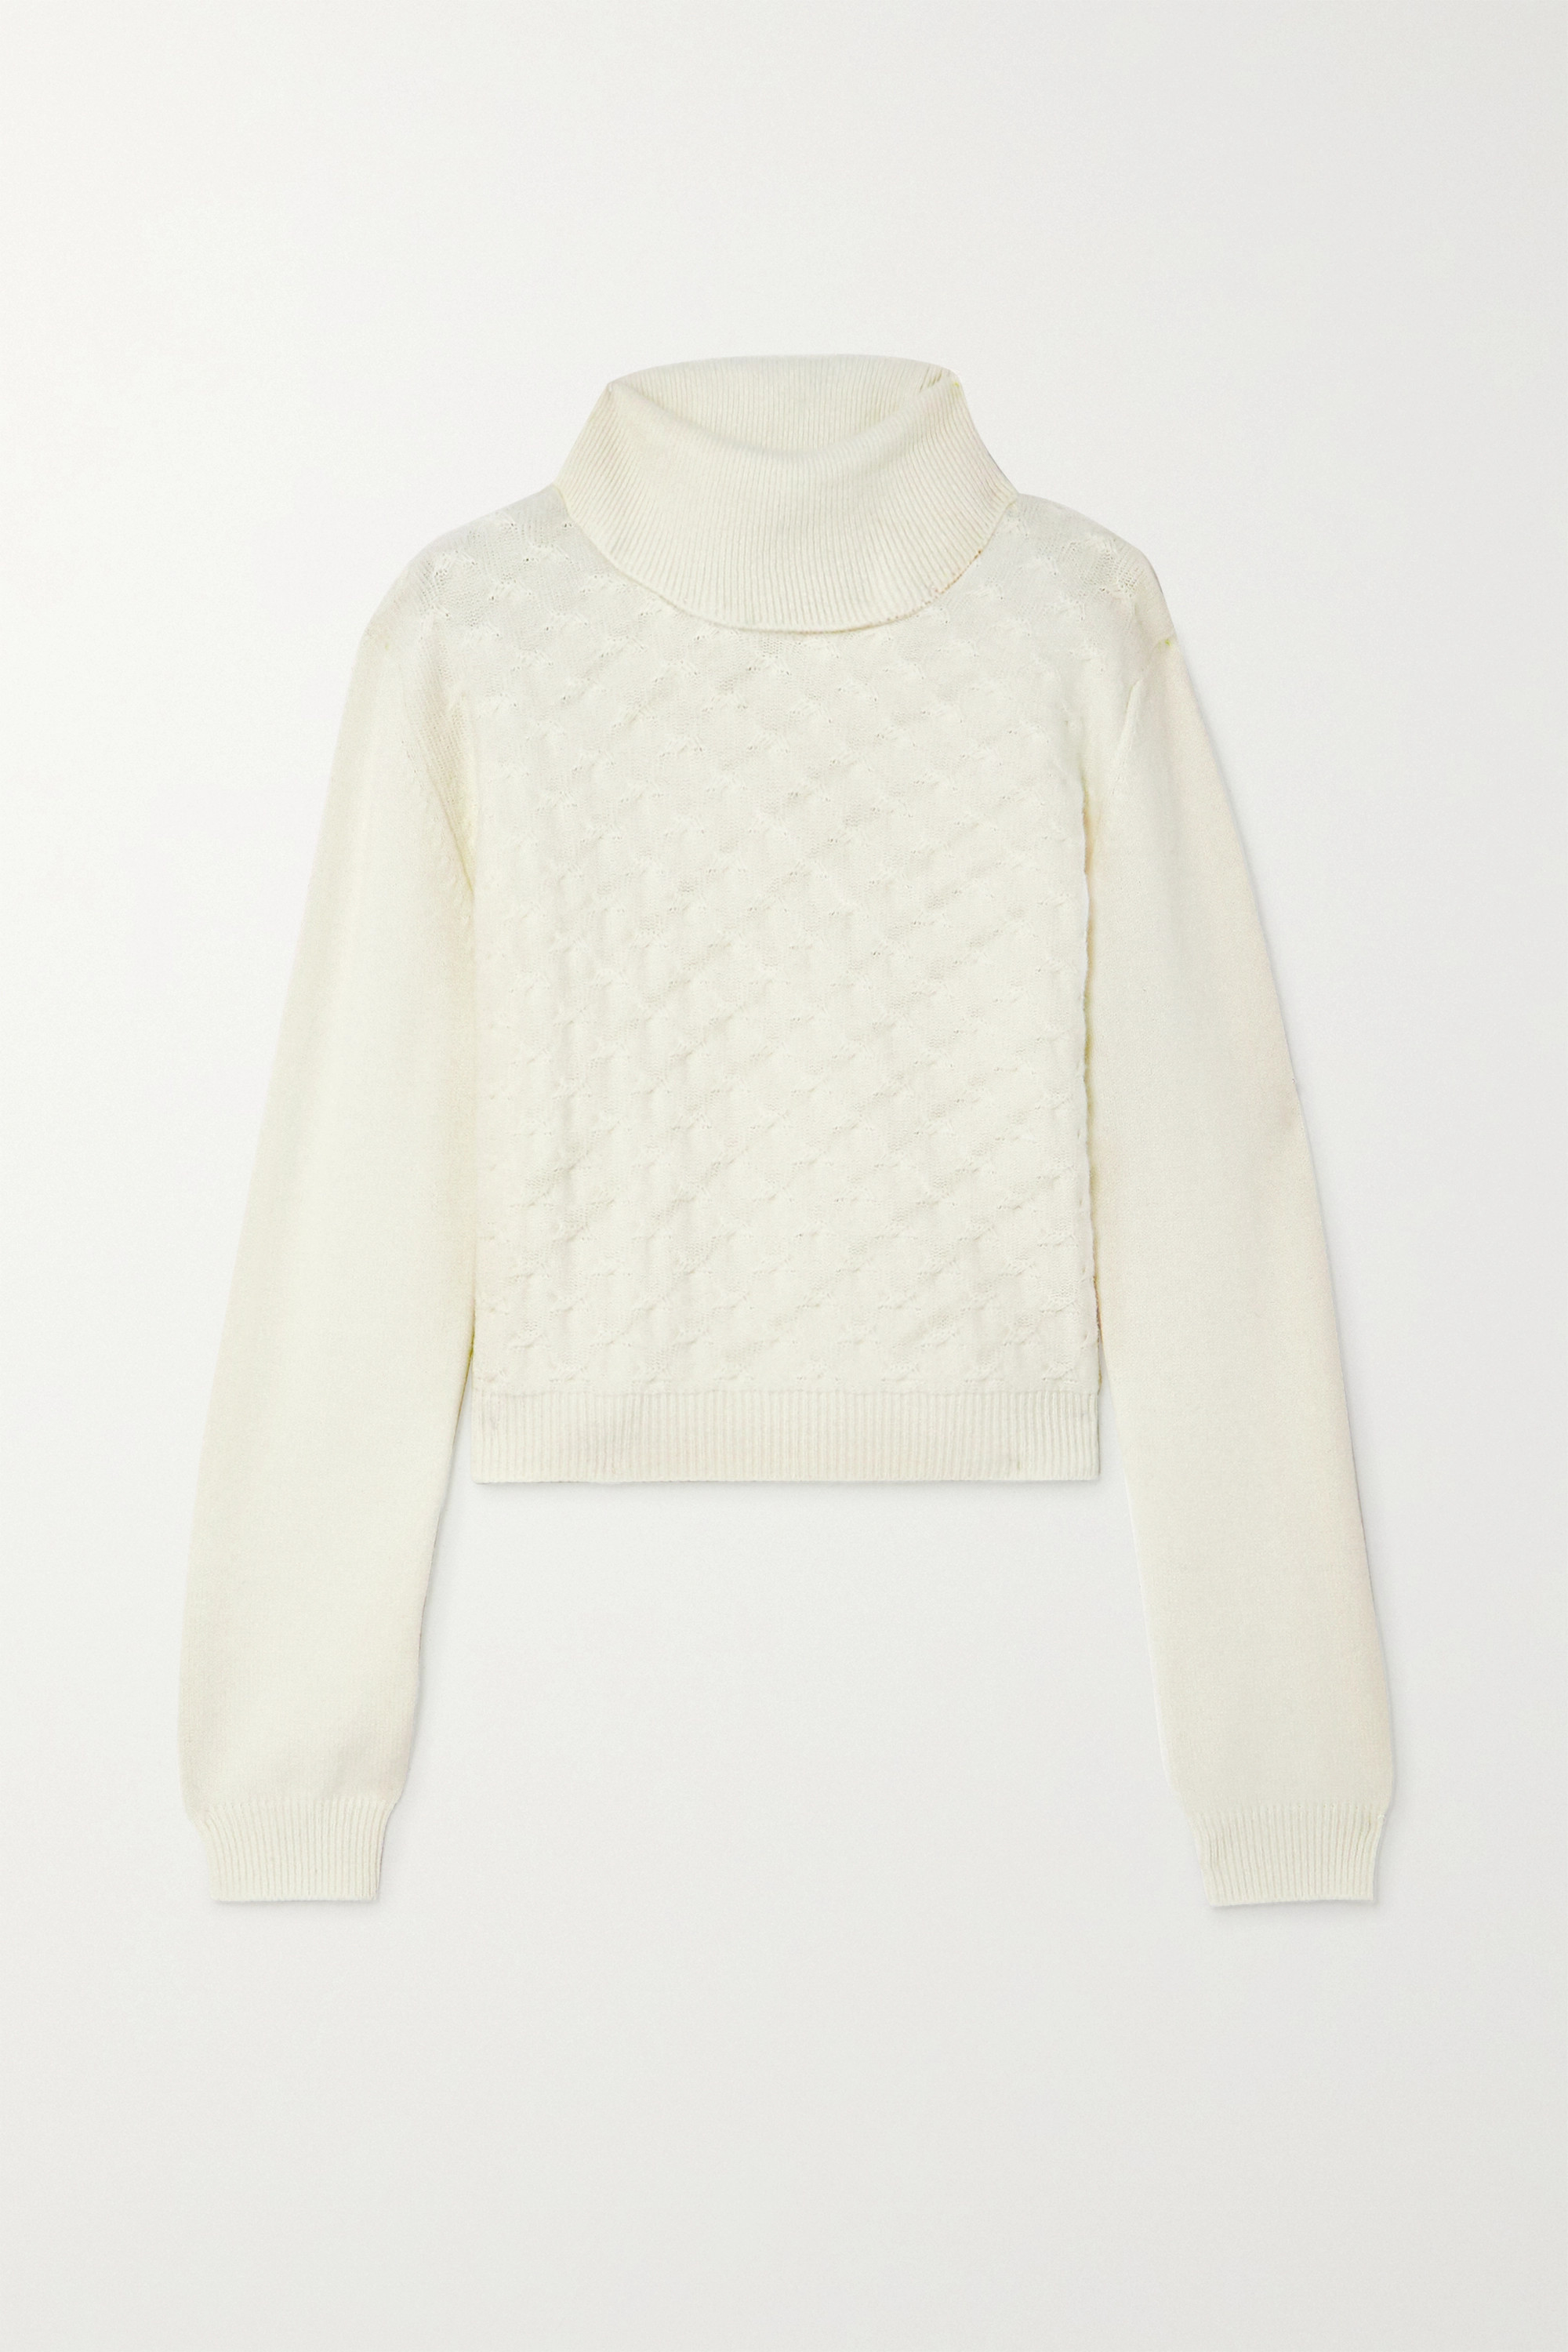 YOOX NET-A-PORTER For The Prince's Foundation Cable-knit cashmere turtleneck sweater